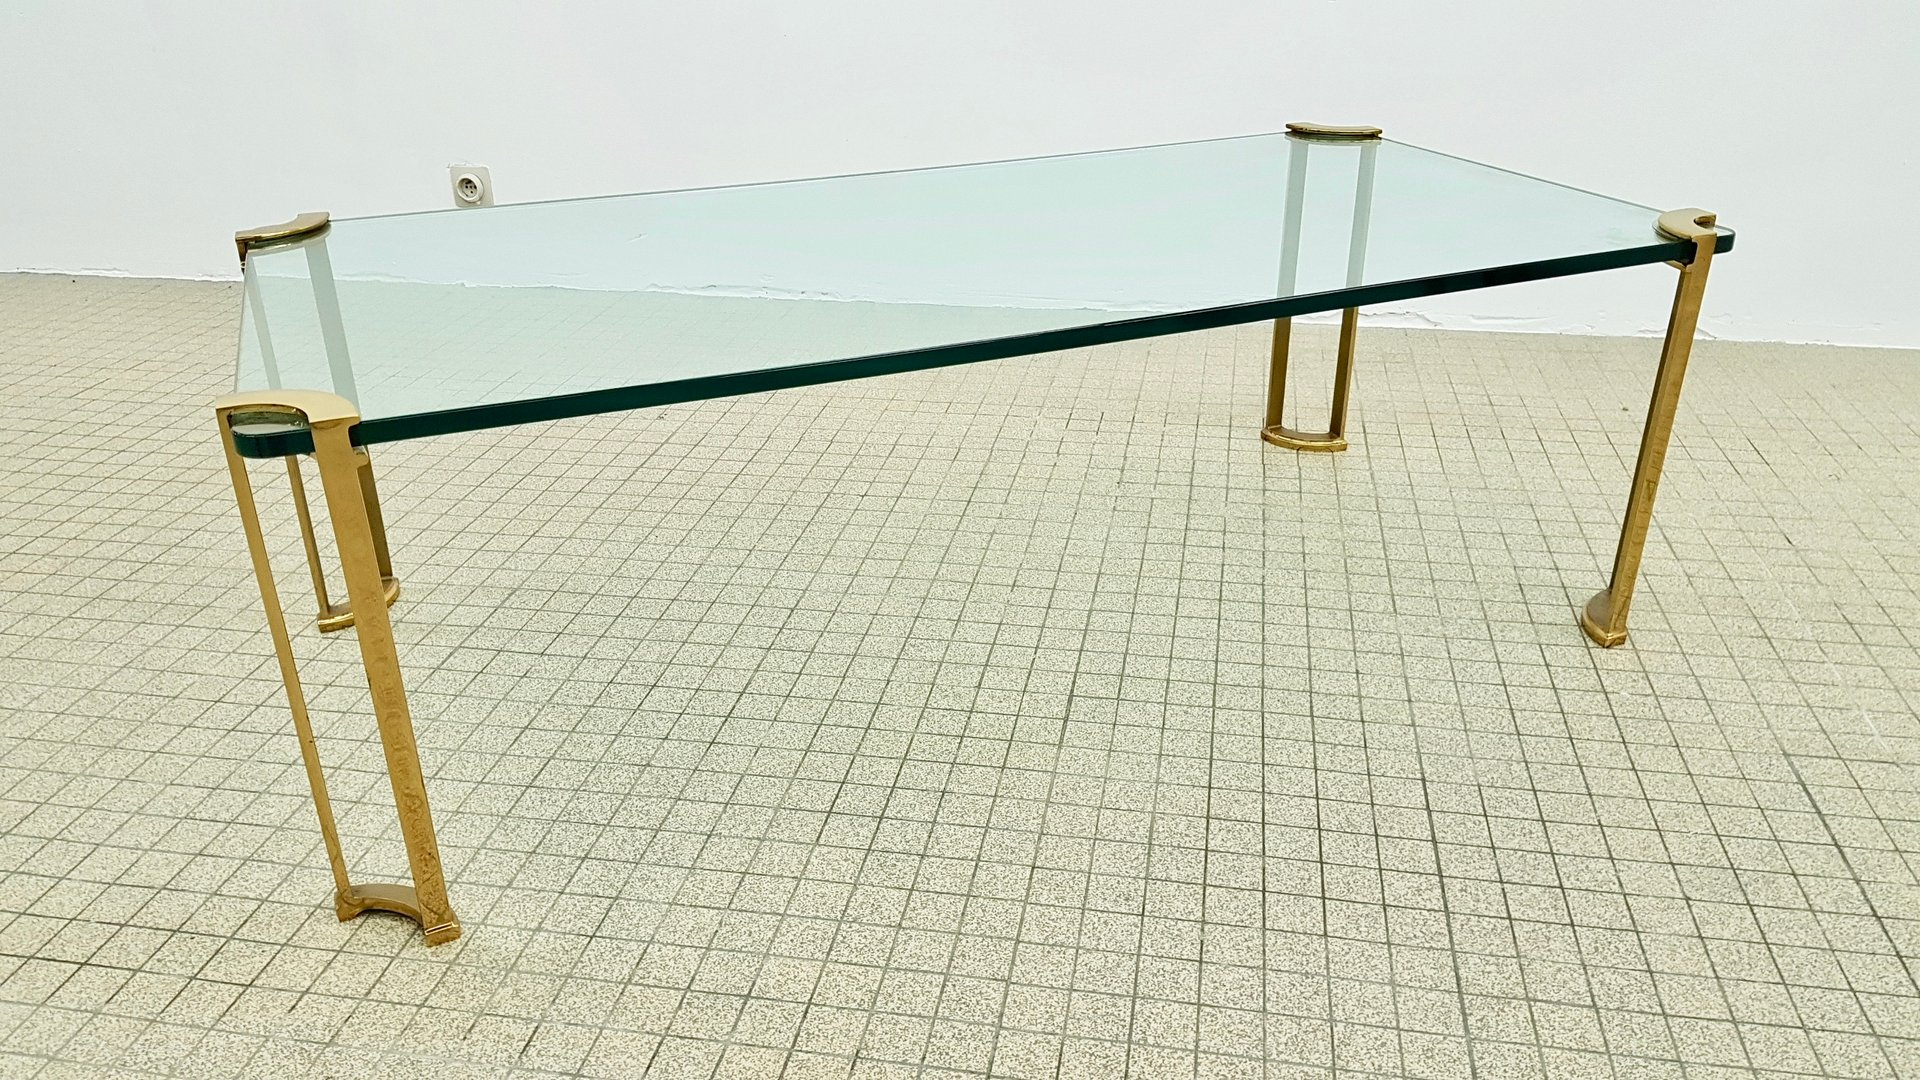 Brass and glass coffee table 1980s 6 1 20000 €